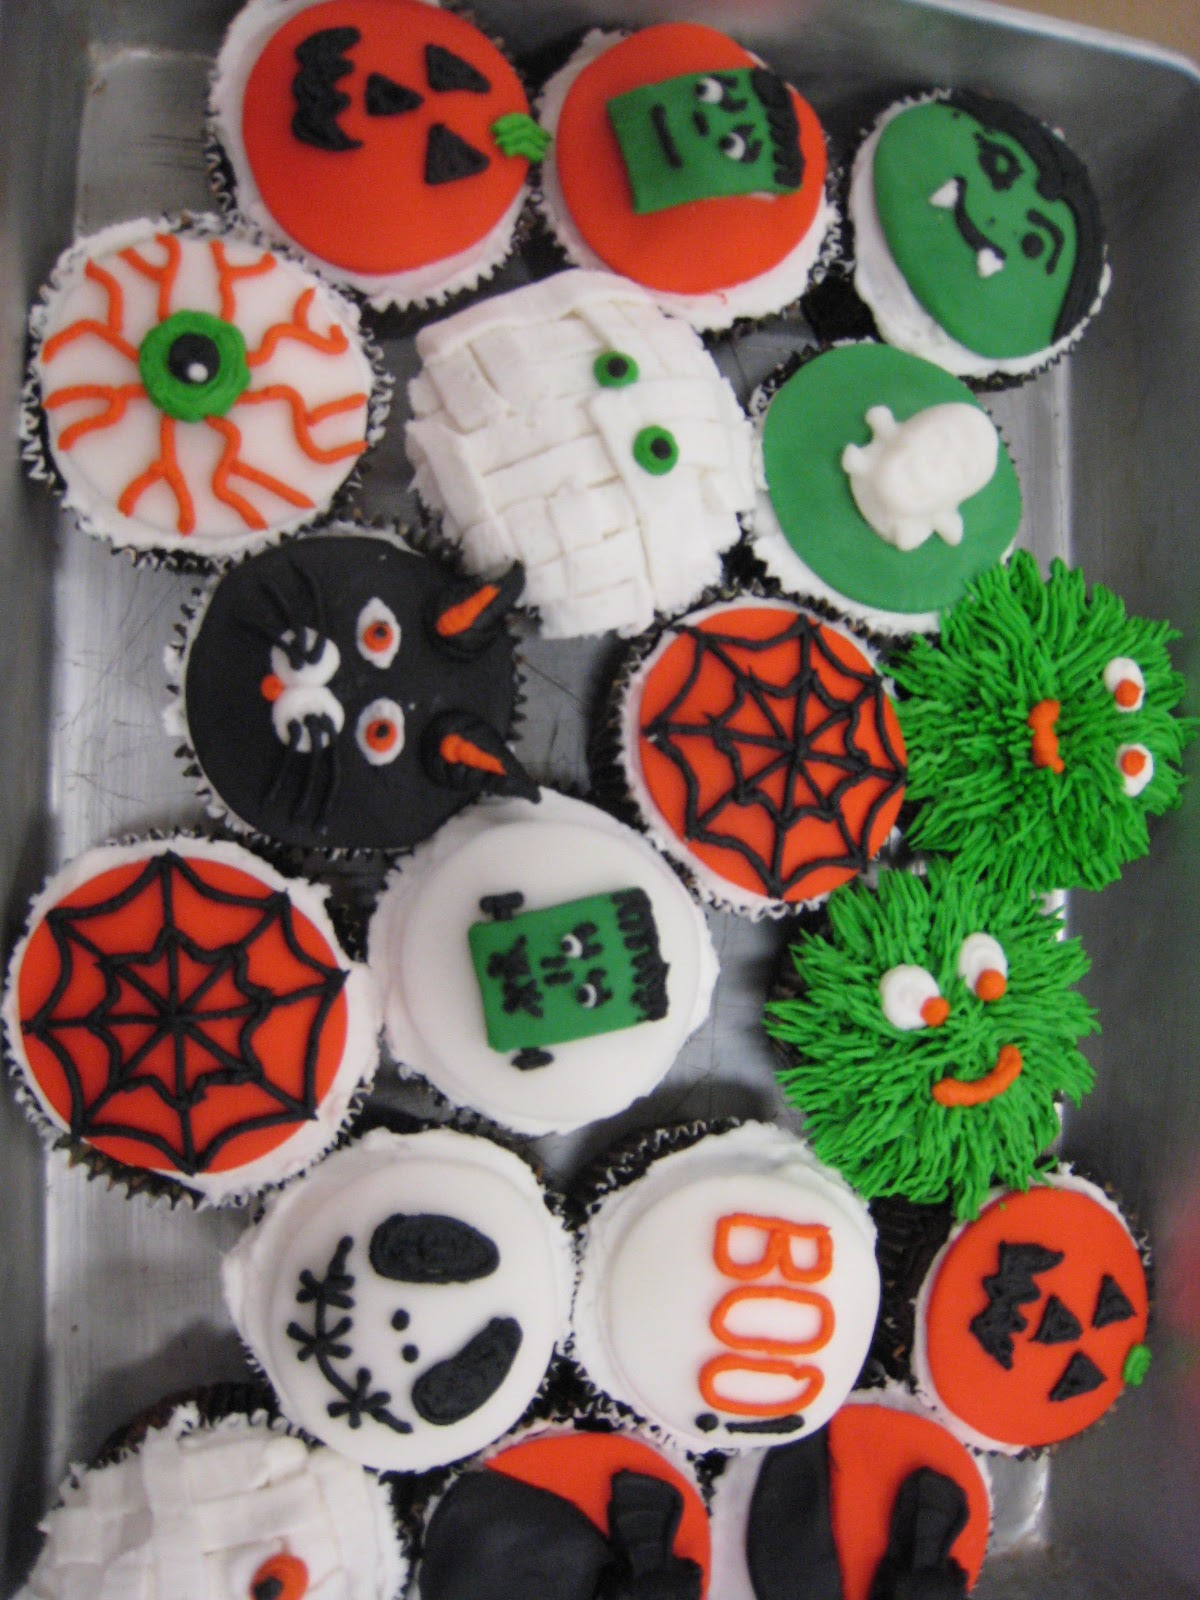 Halloween Cupcake Cake Decorating Ideas : Judy Cakes Sugar Arts: Halloween Cupcake Decorating Class